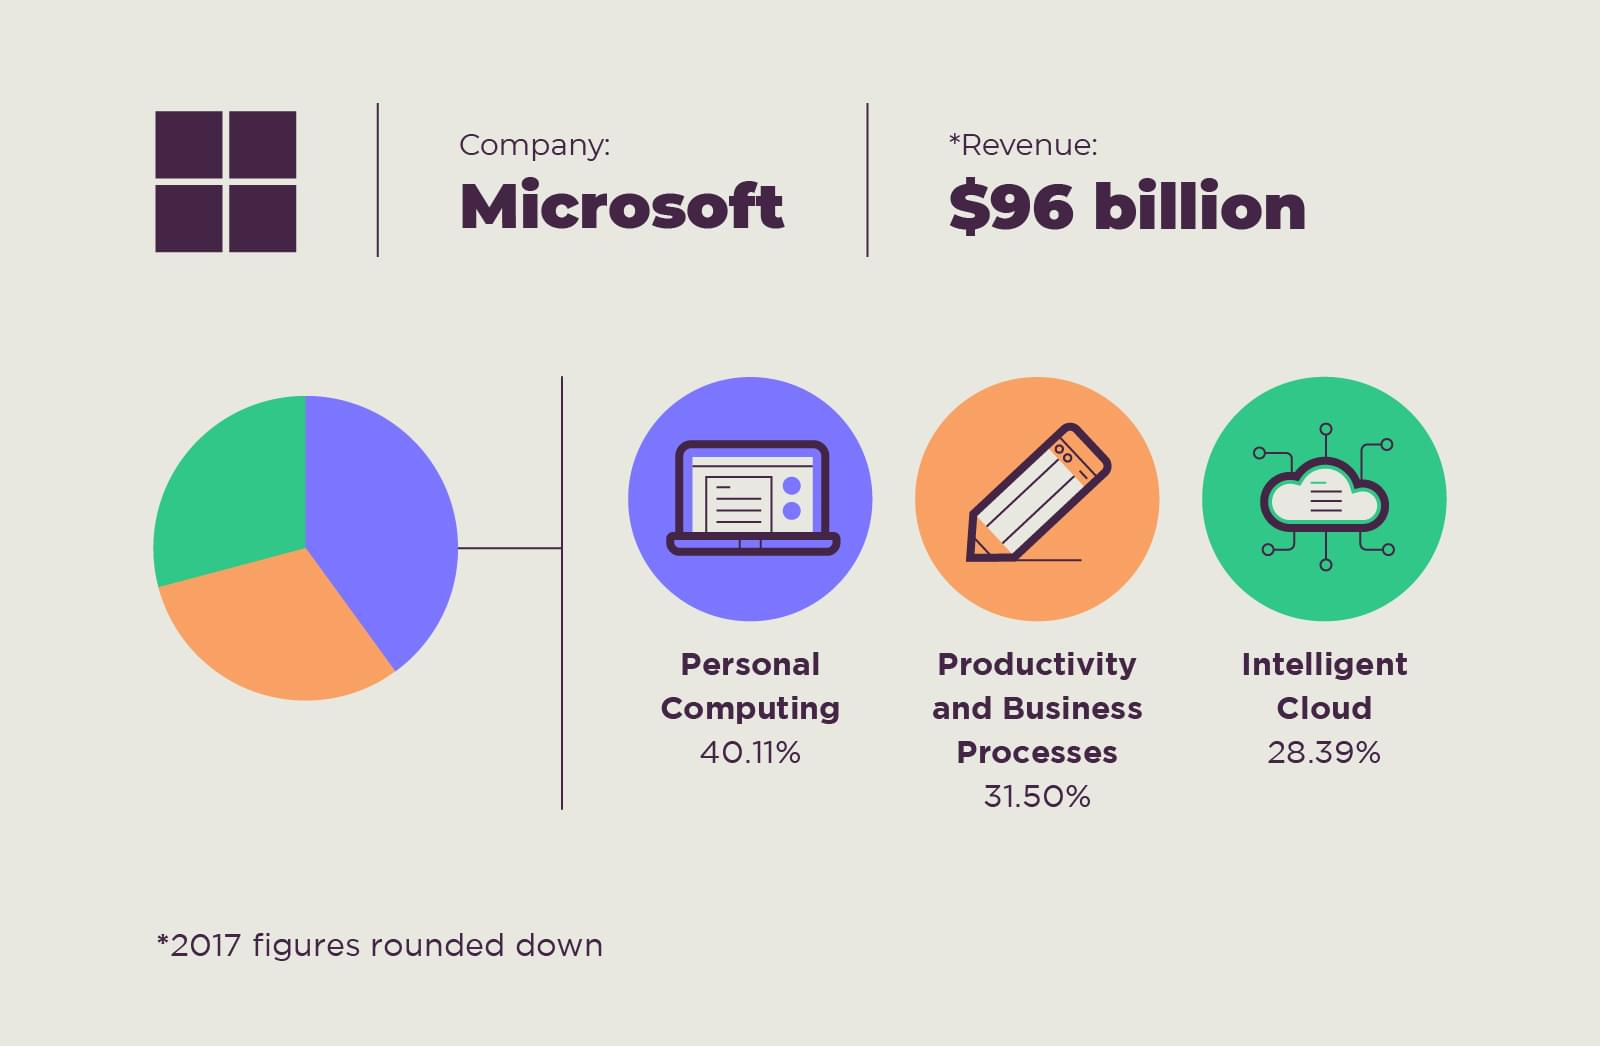 The personal computing software giant microsoft has changed the business model substantially